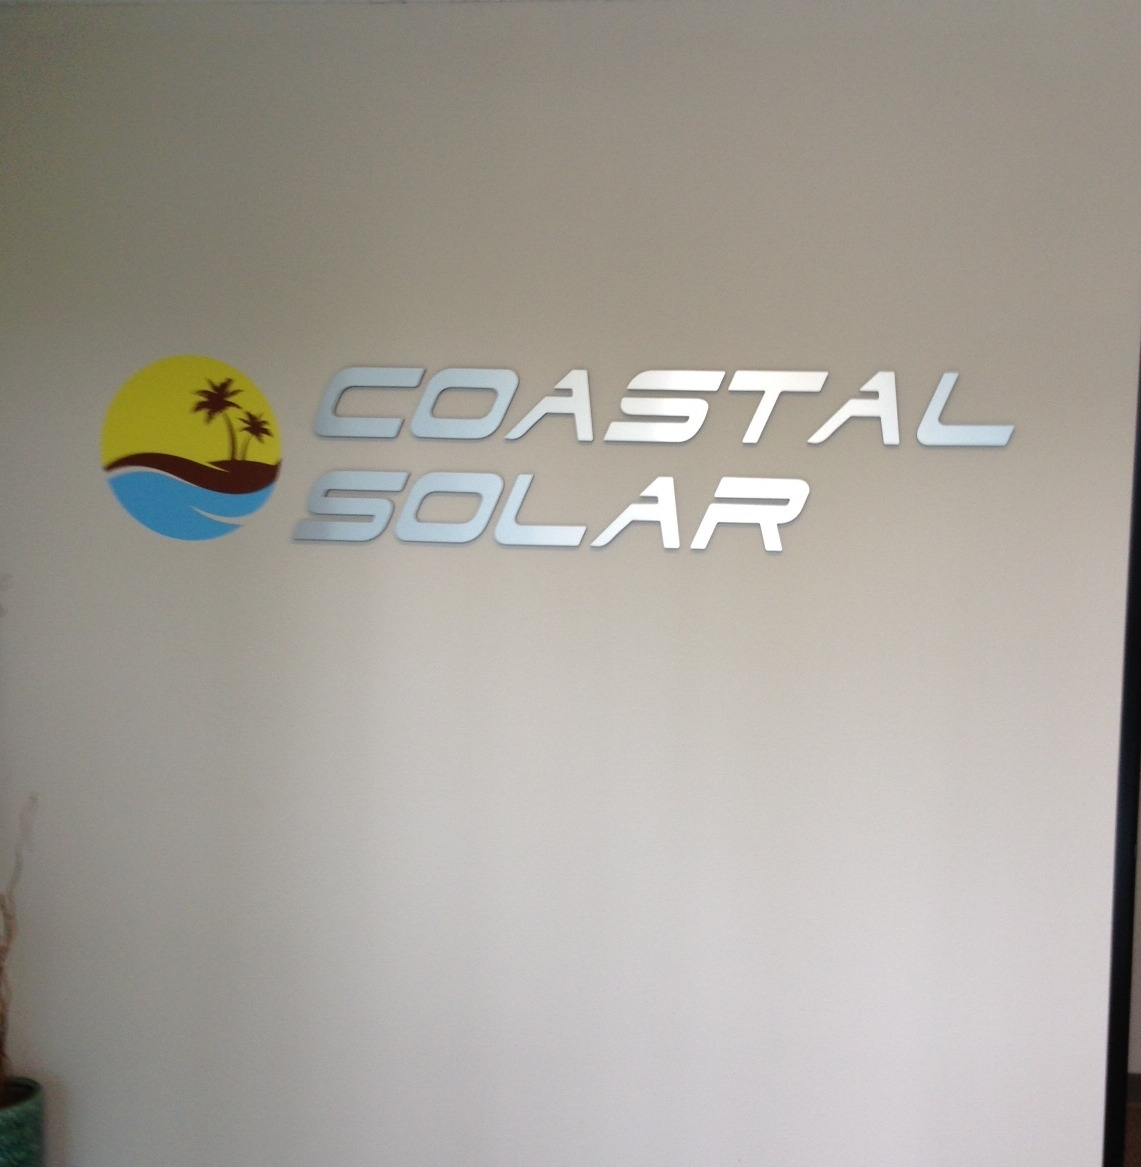 Brushed Aluminum lobby sign with a great logo